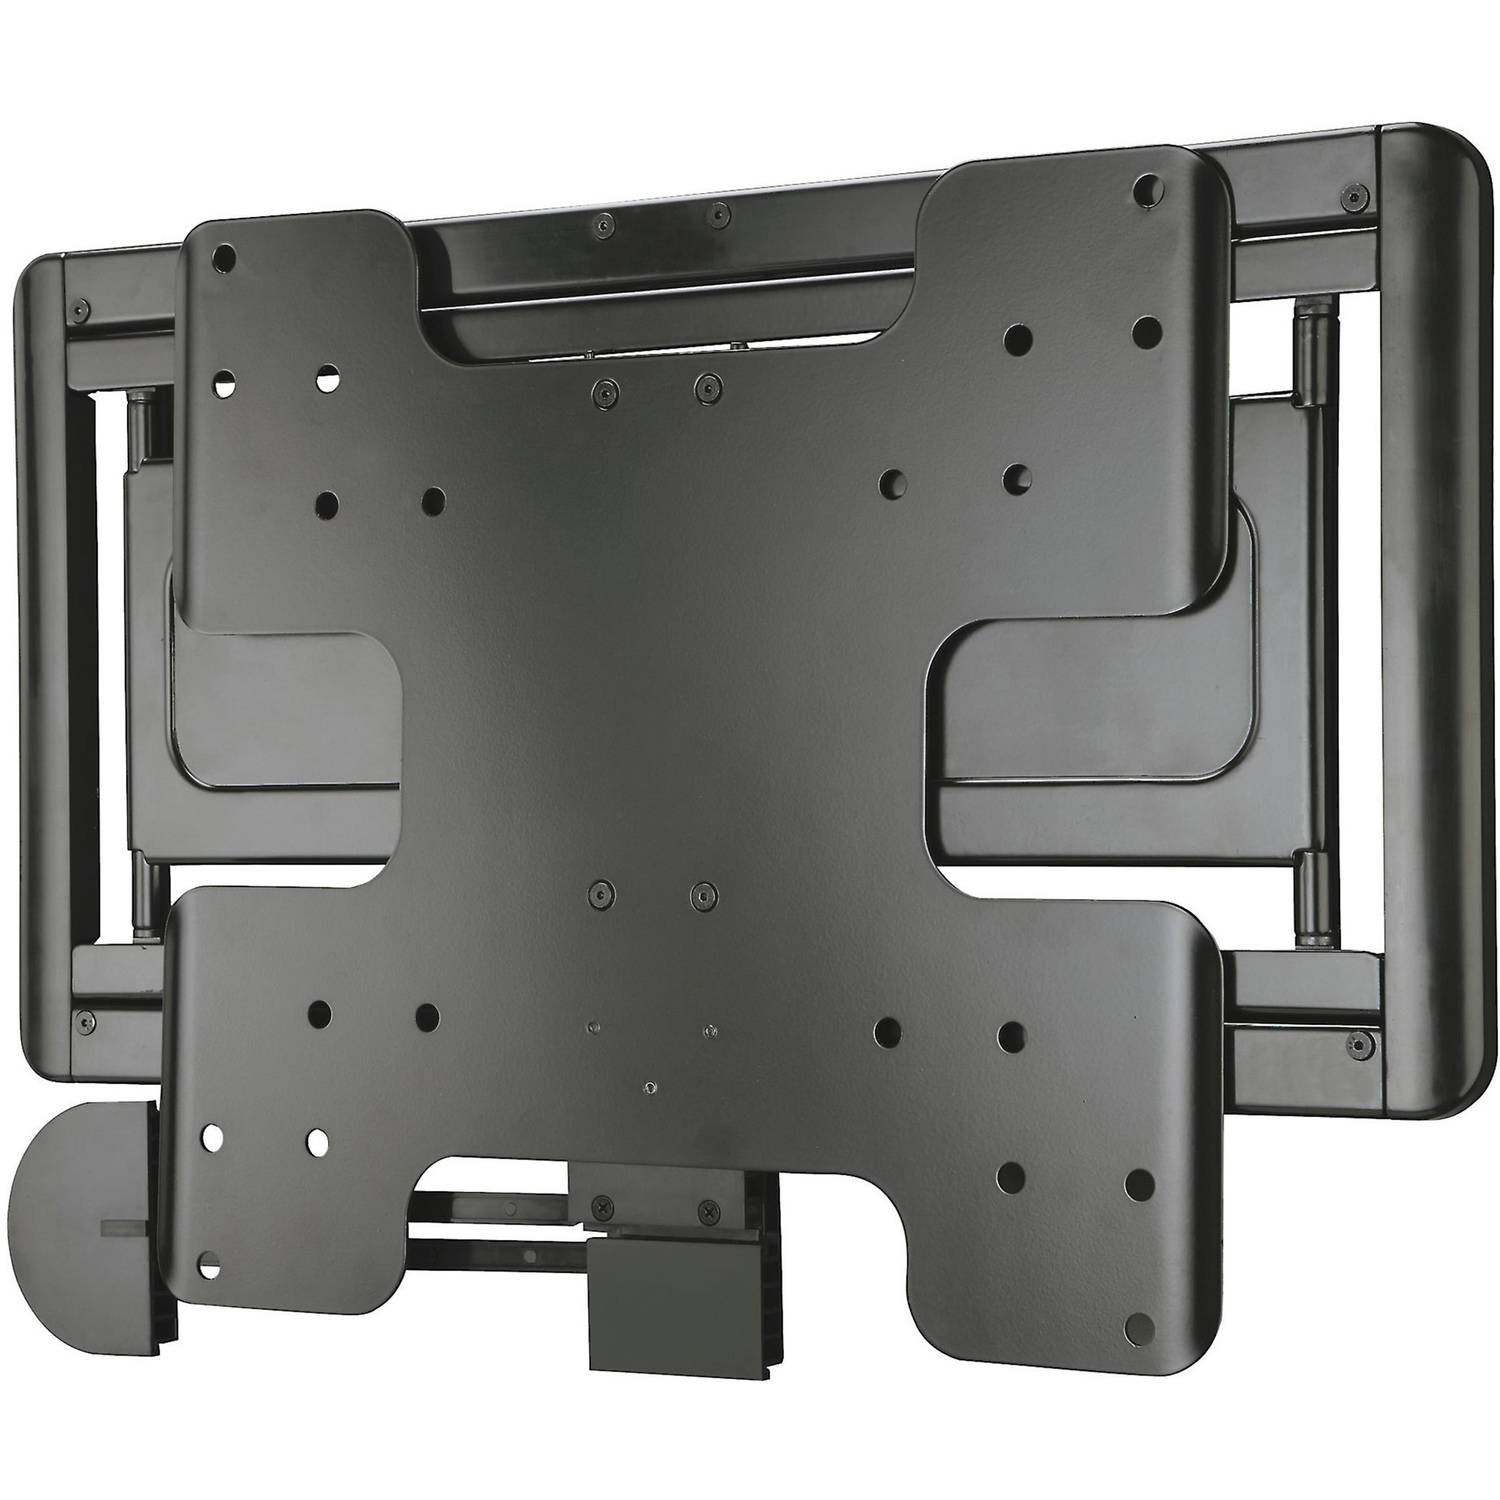 "SANUS Super-Slim Full-Motion Mount for 32""-50"" Flat-Panel TVs"